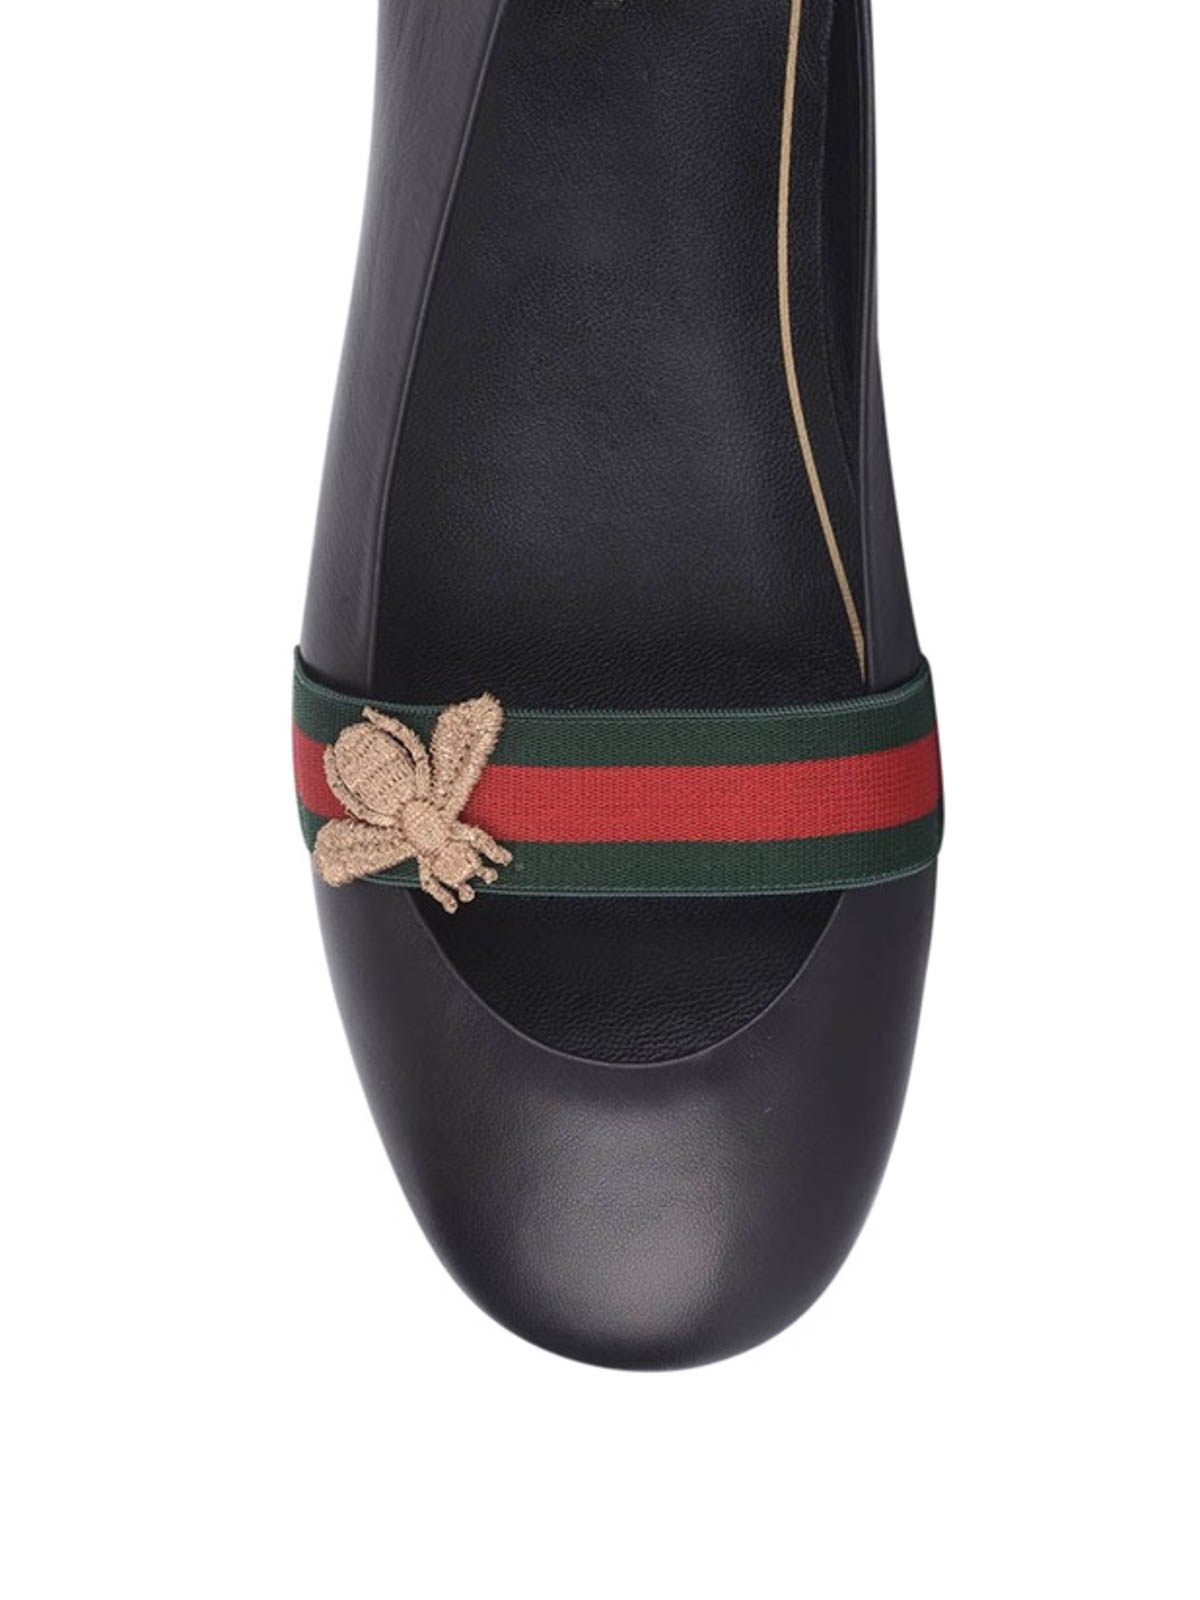 e2758b97c00 Gucci - Leather ballerinas with bee - flat shoes - 417668 BLQZ0 1071